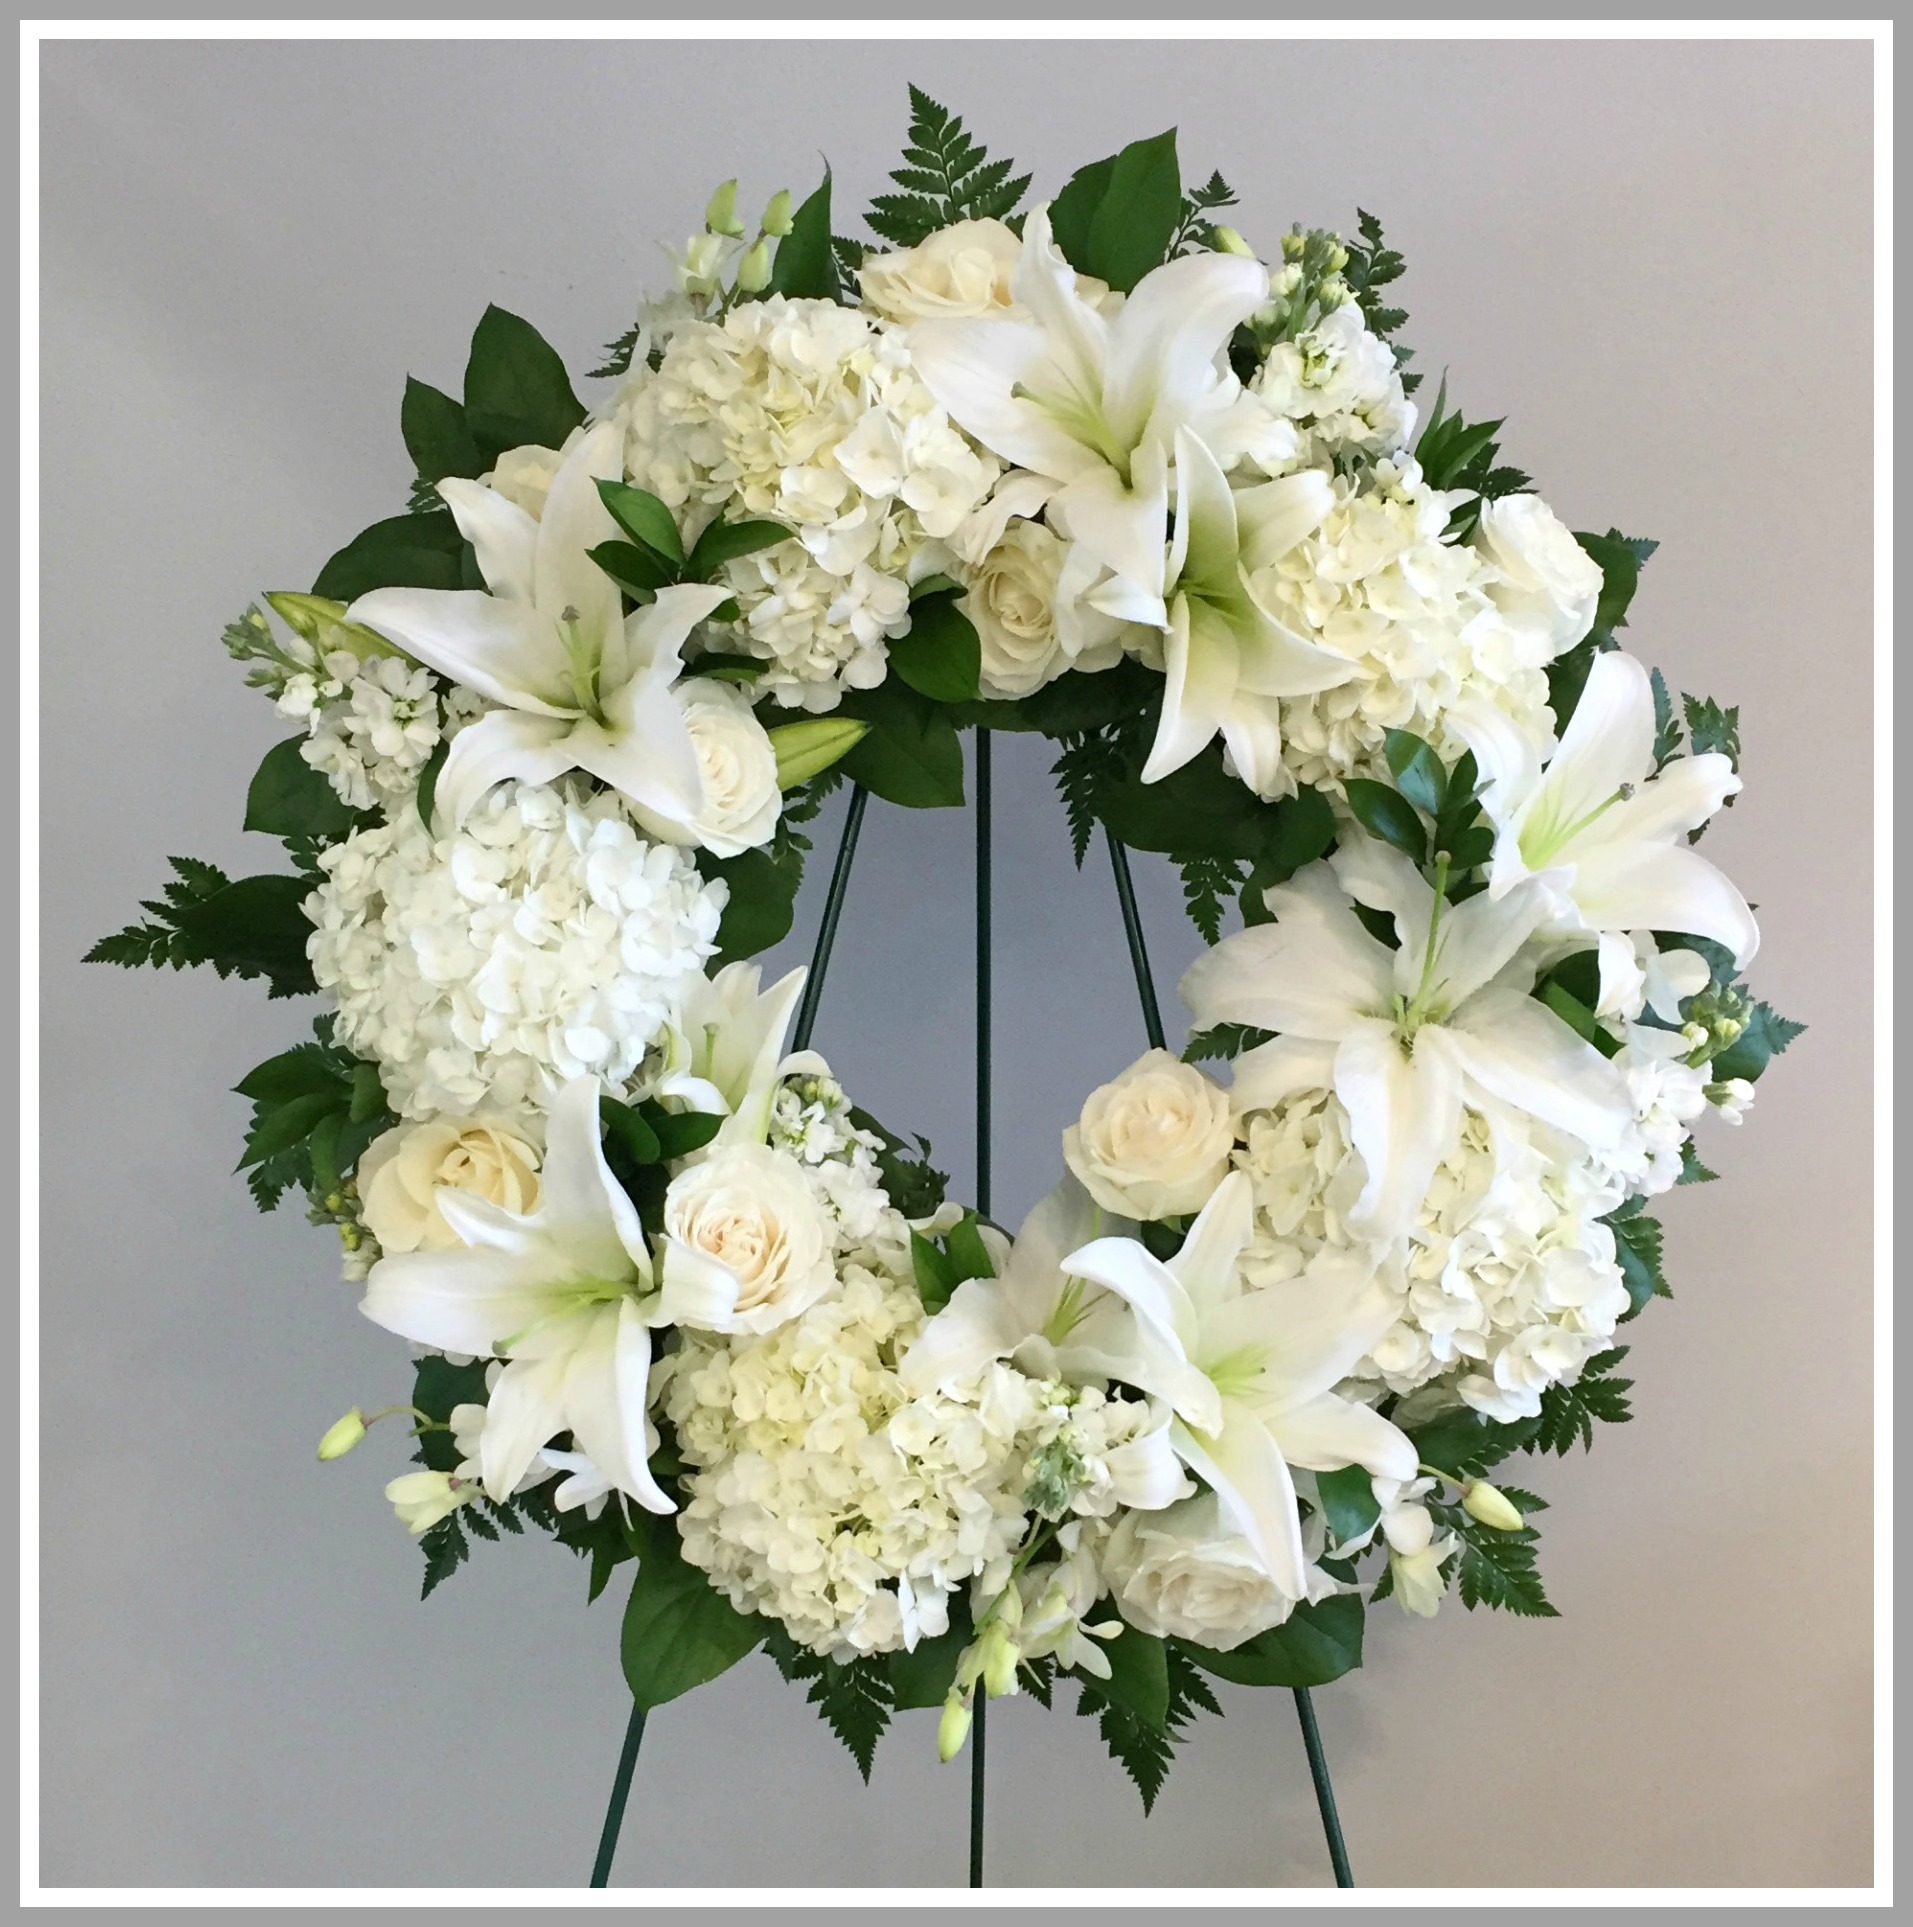 Sympathy and funeral flowers by lindas florist of short hills sympathy funeral dhlflorist Images